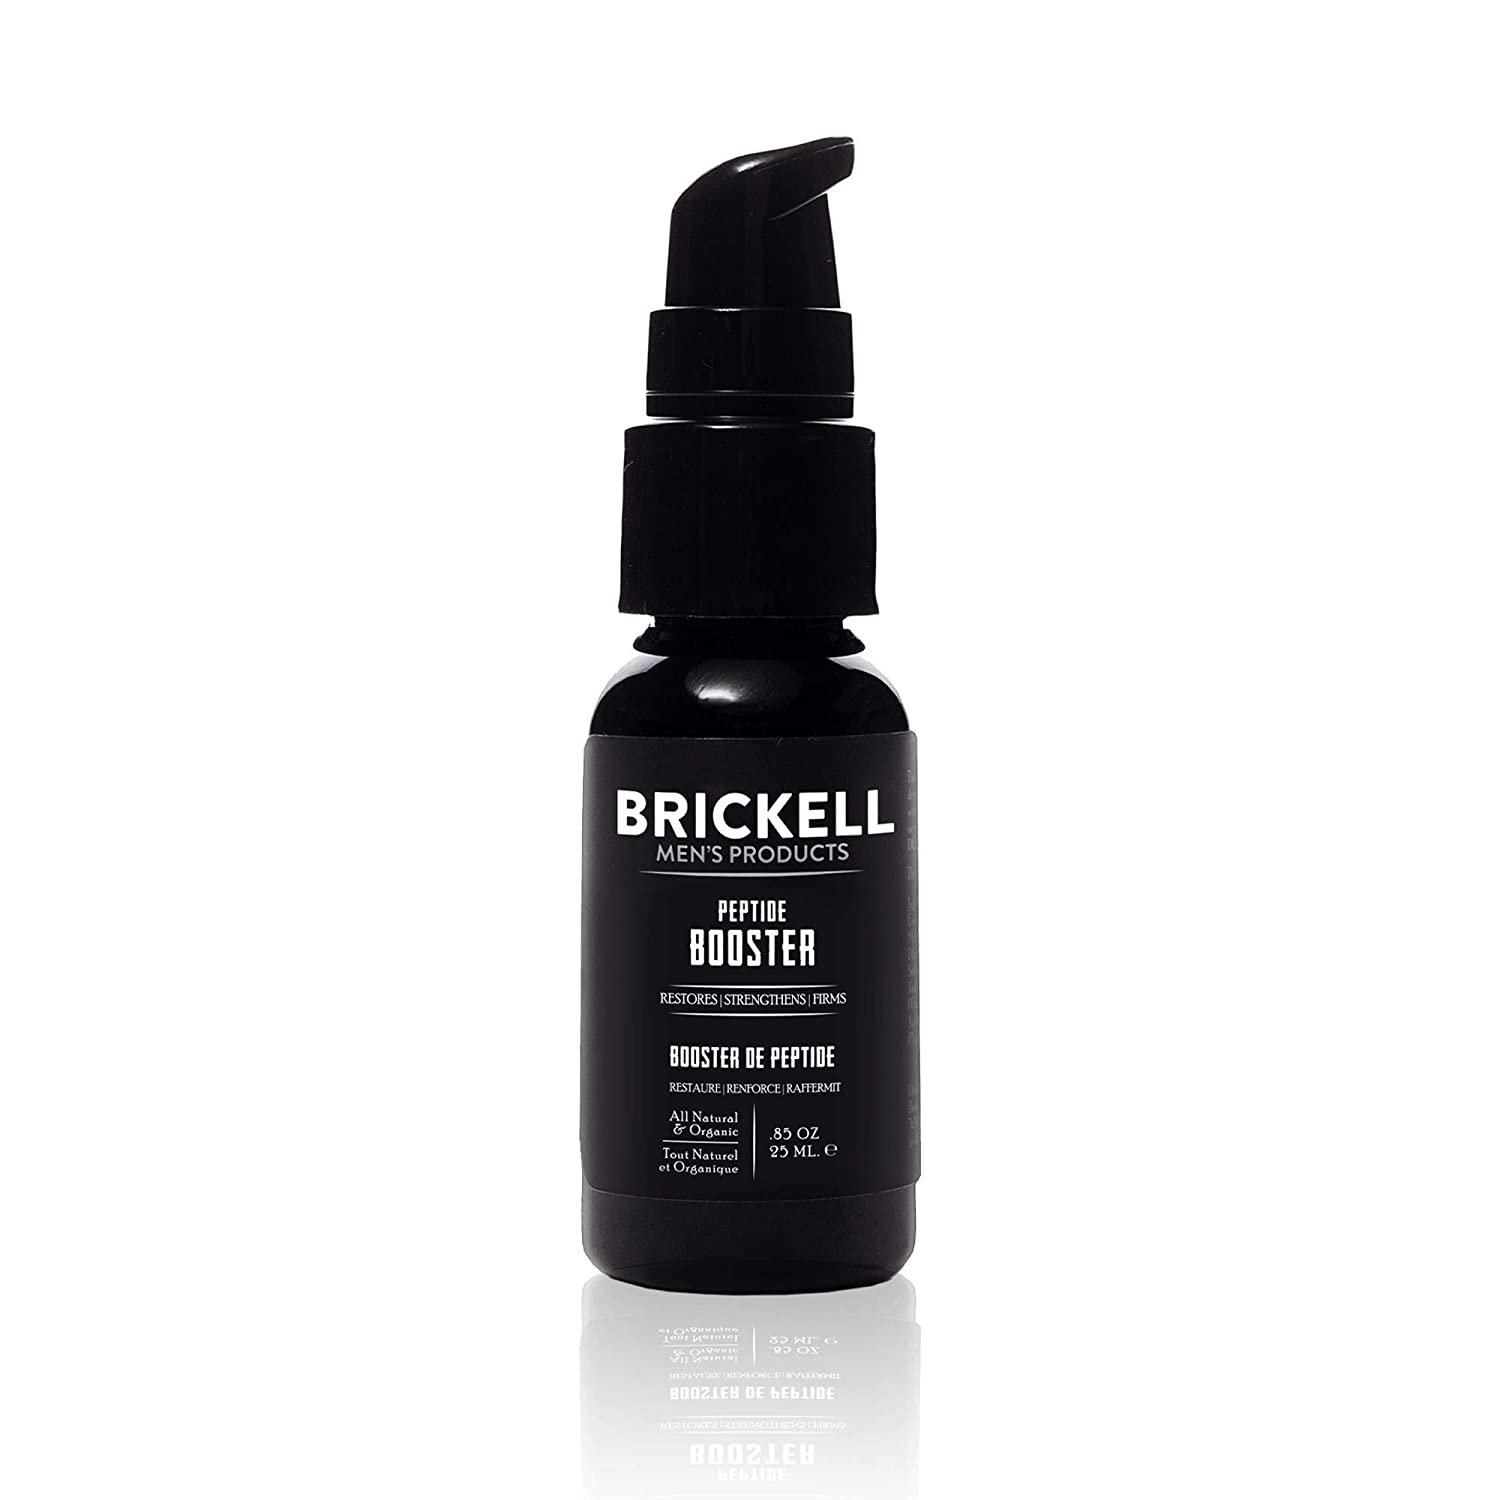 Brickell Men's Protein Peptides Booster for Men, Natural and Organic Protein Peptides Booster for Face to Firm and Restore Skin, Boost Collagen Production and Fight Aging.85 oz, Unscented